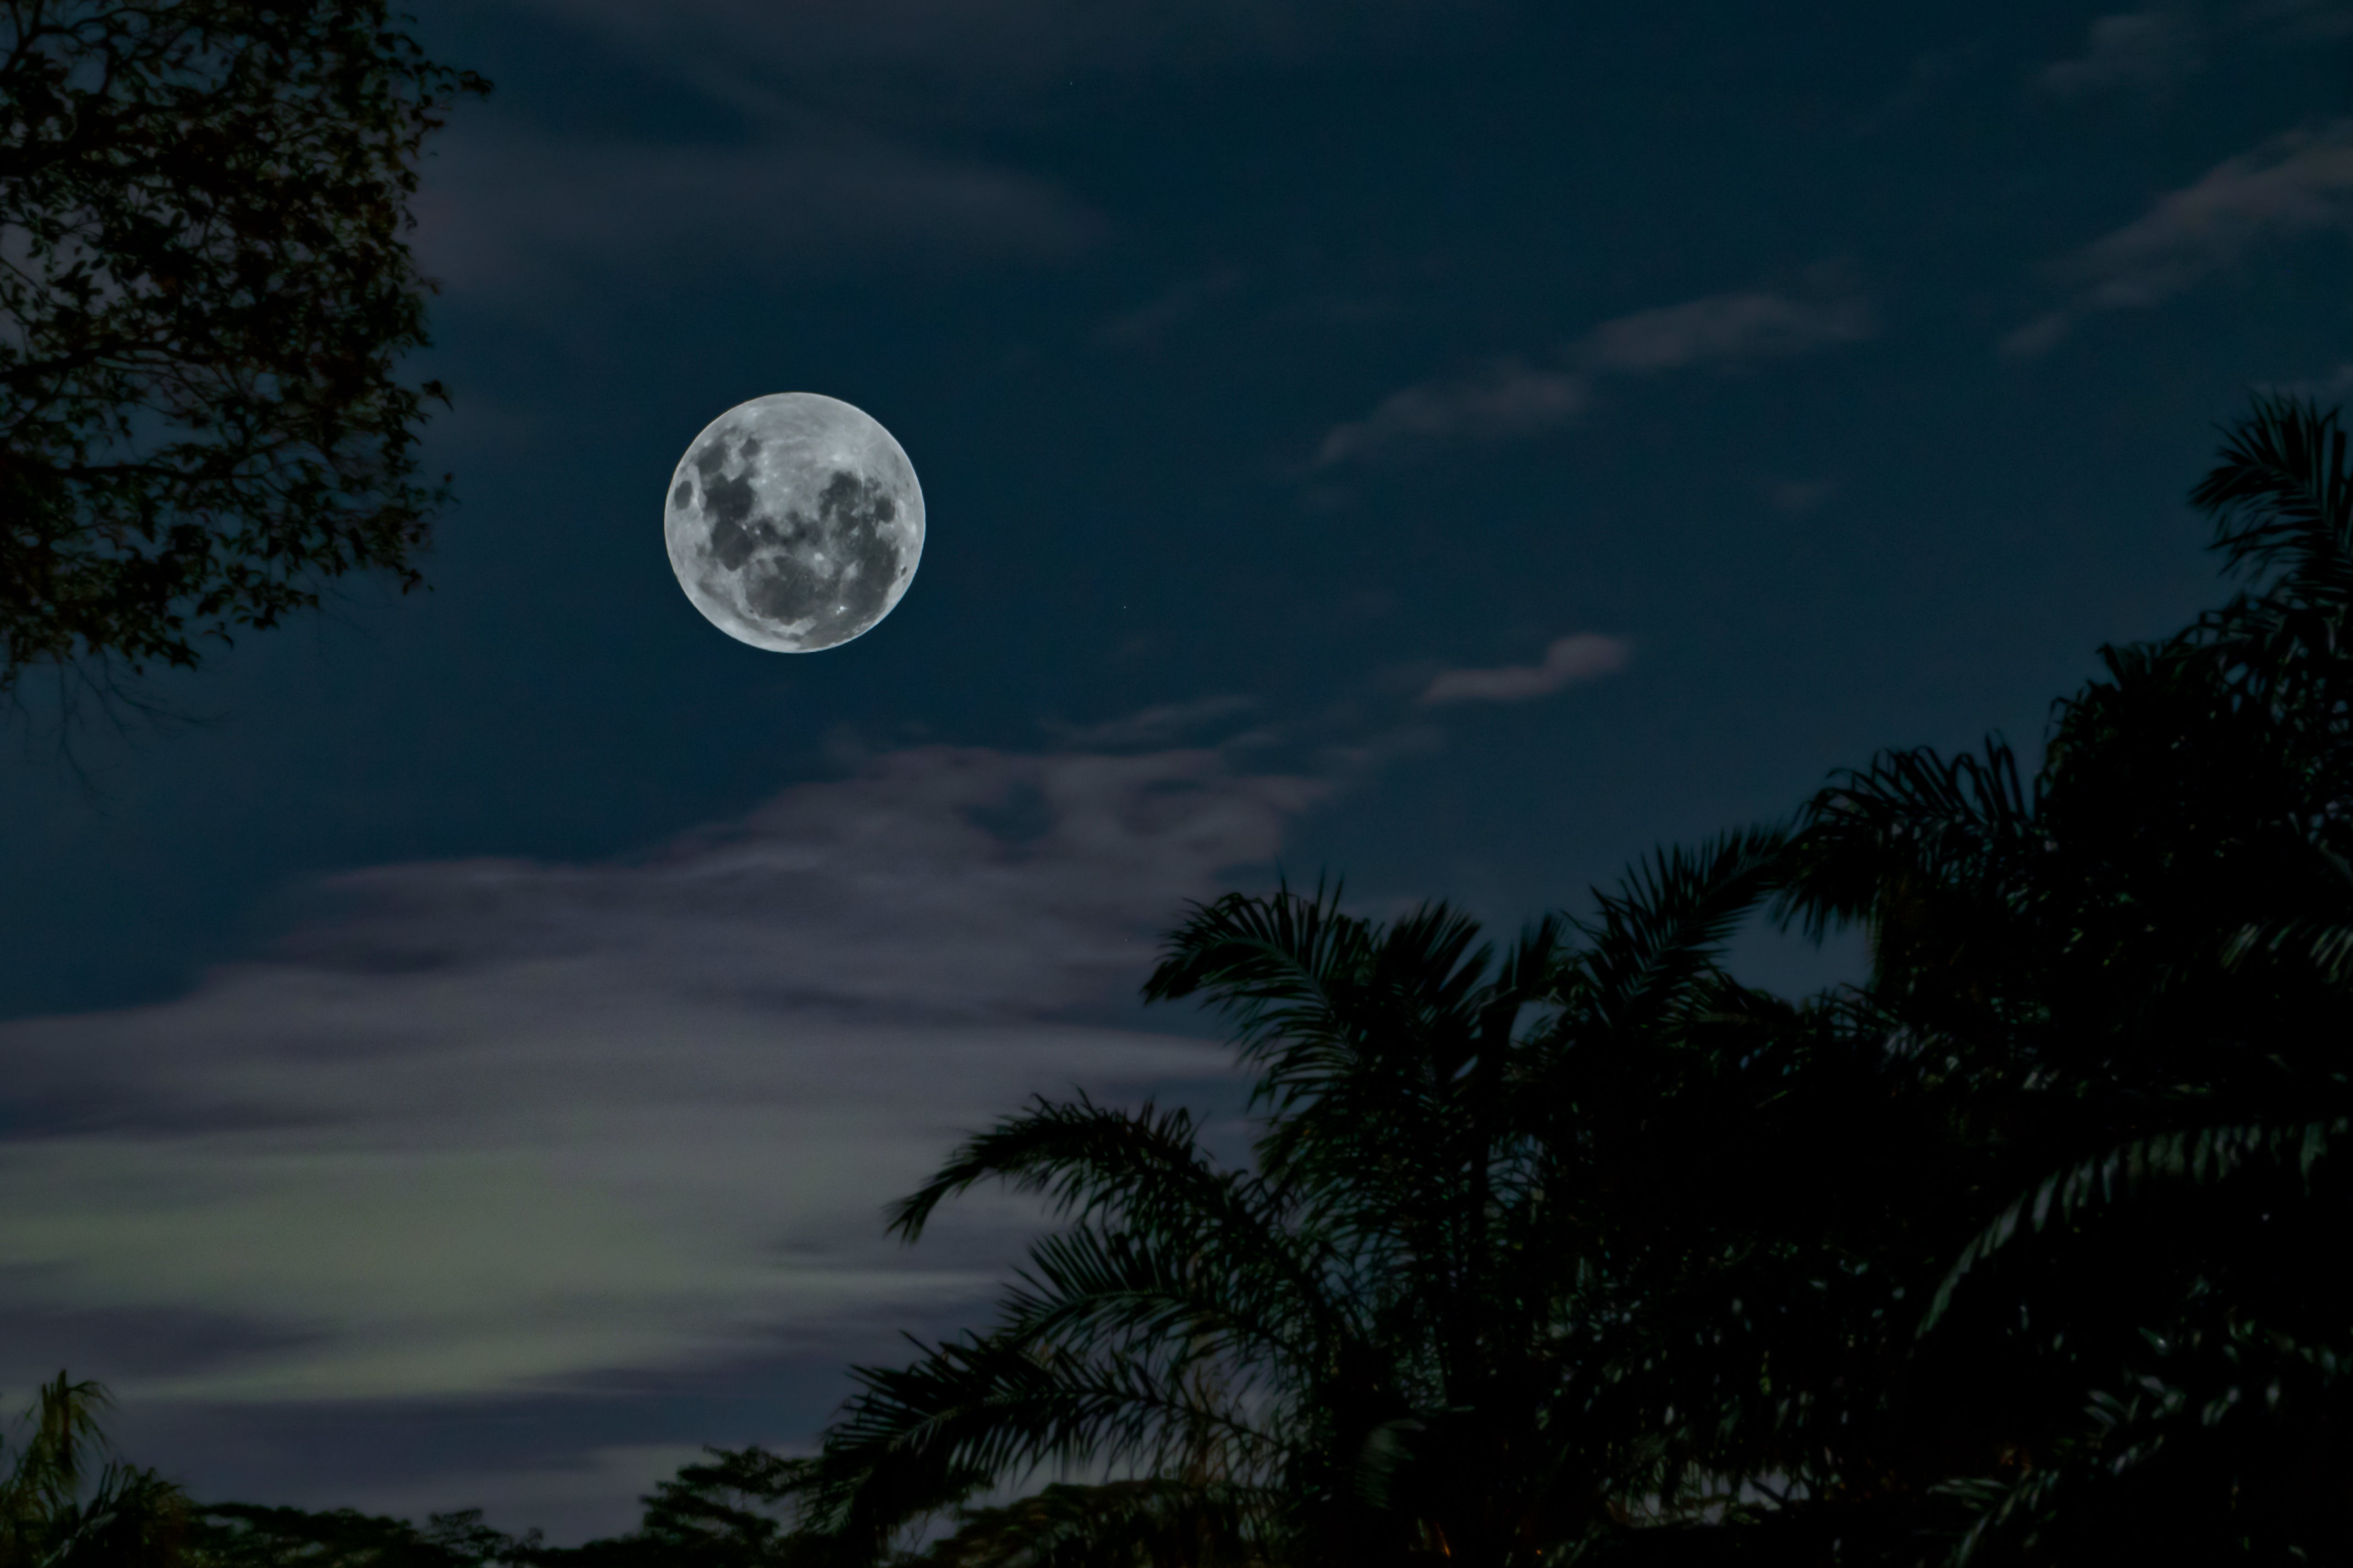 Low Angle Photography of Full Moon Under Silhouette of Tall Trees